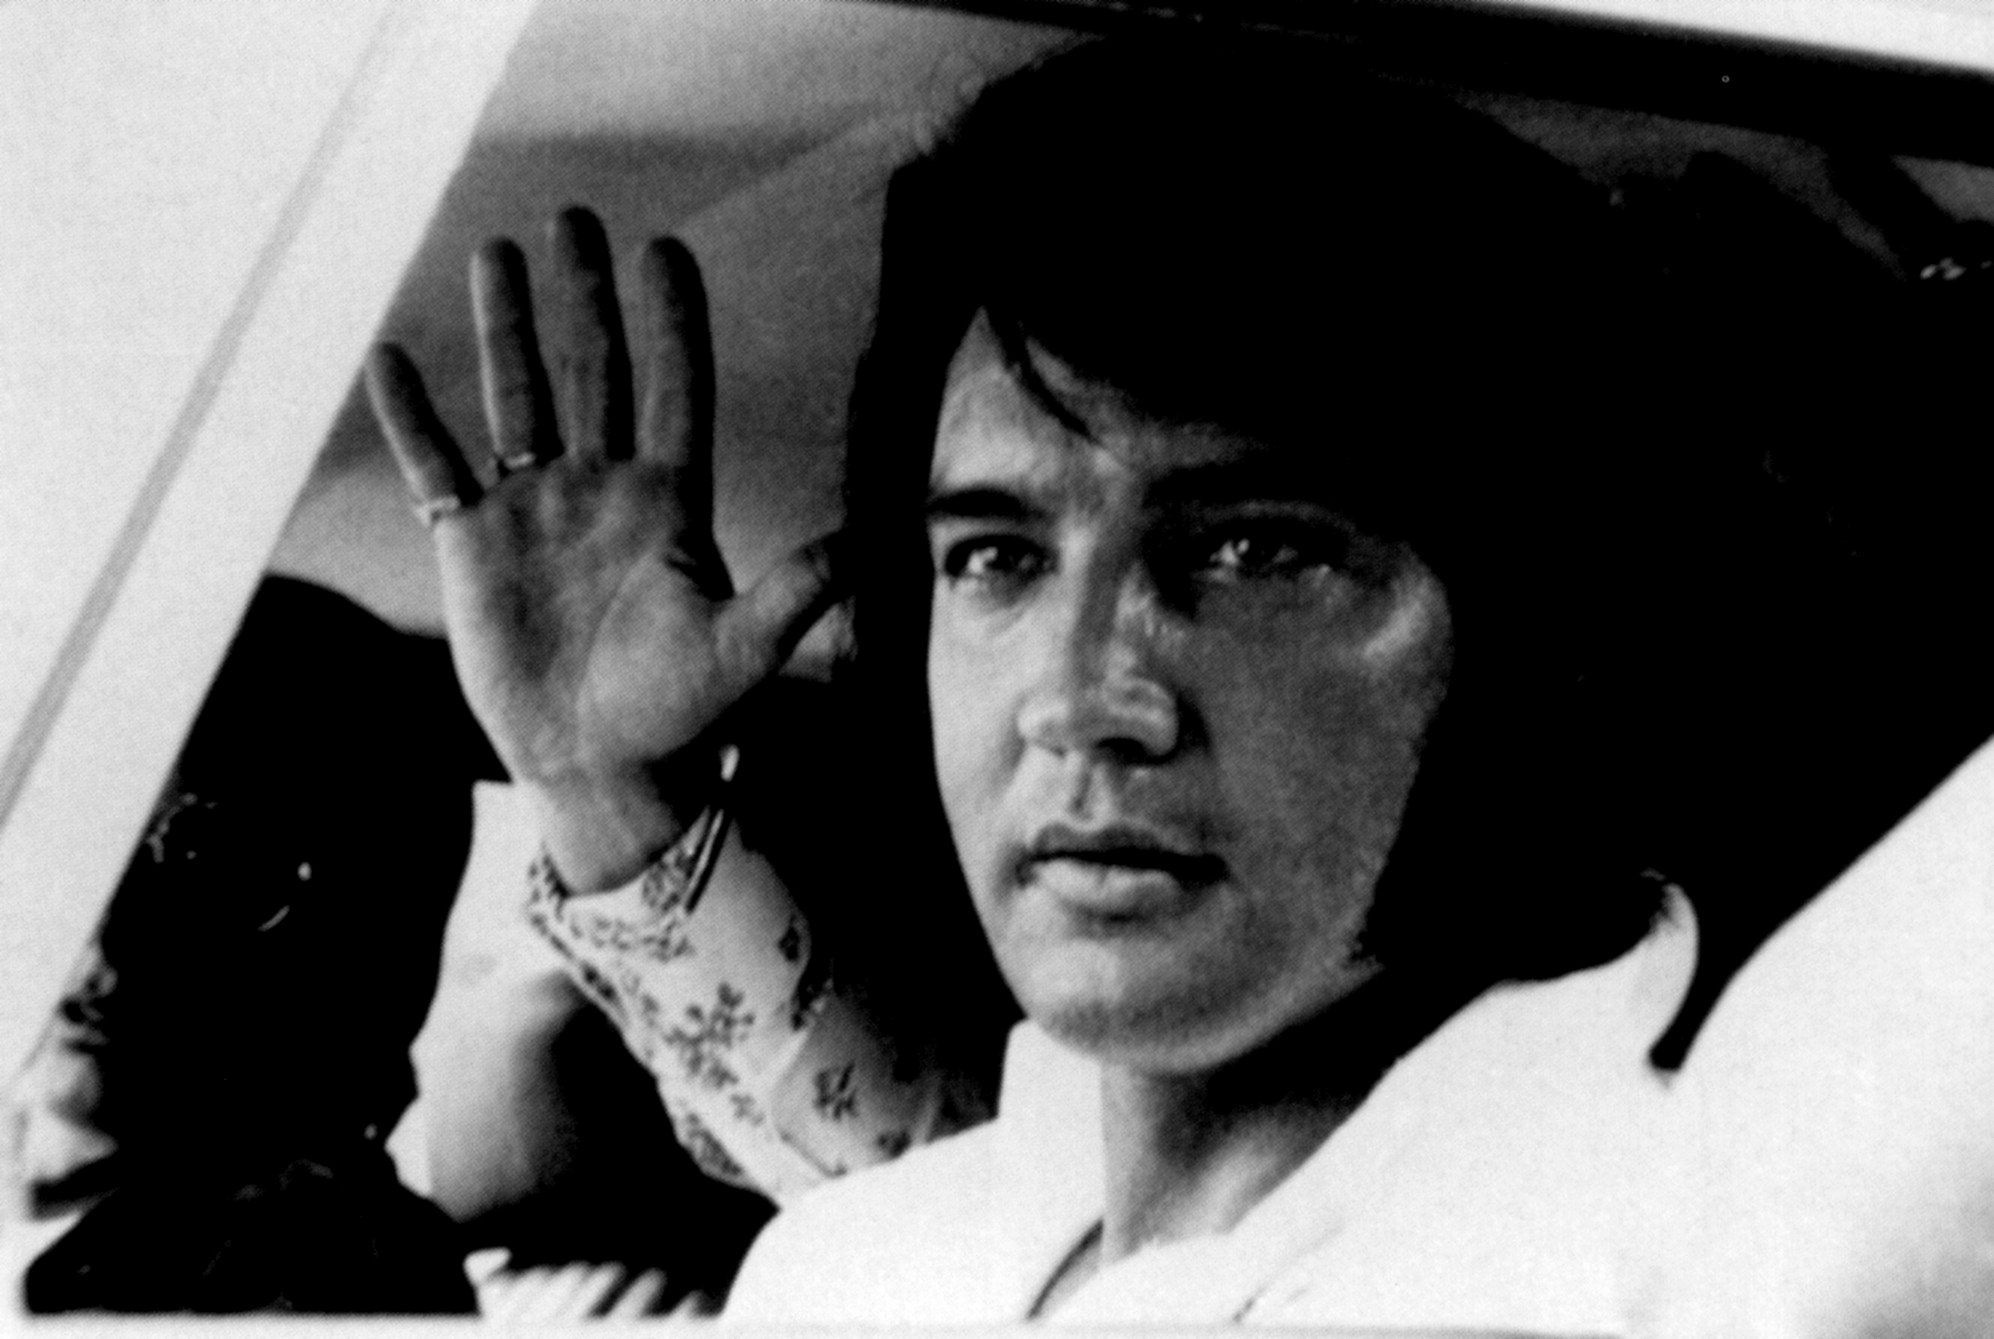 ELVIS DRIVING THROUGH THE GATES OF GRACELAND SOMETIME IN 1972